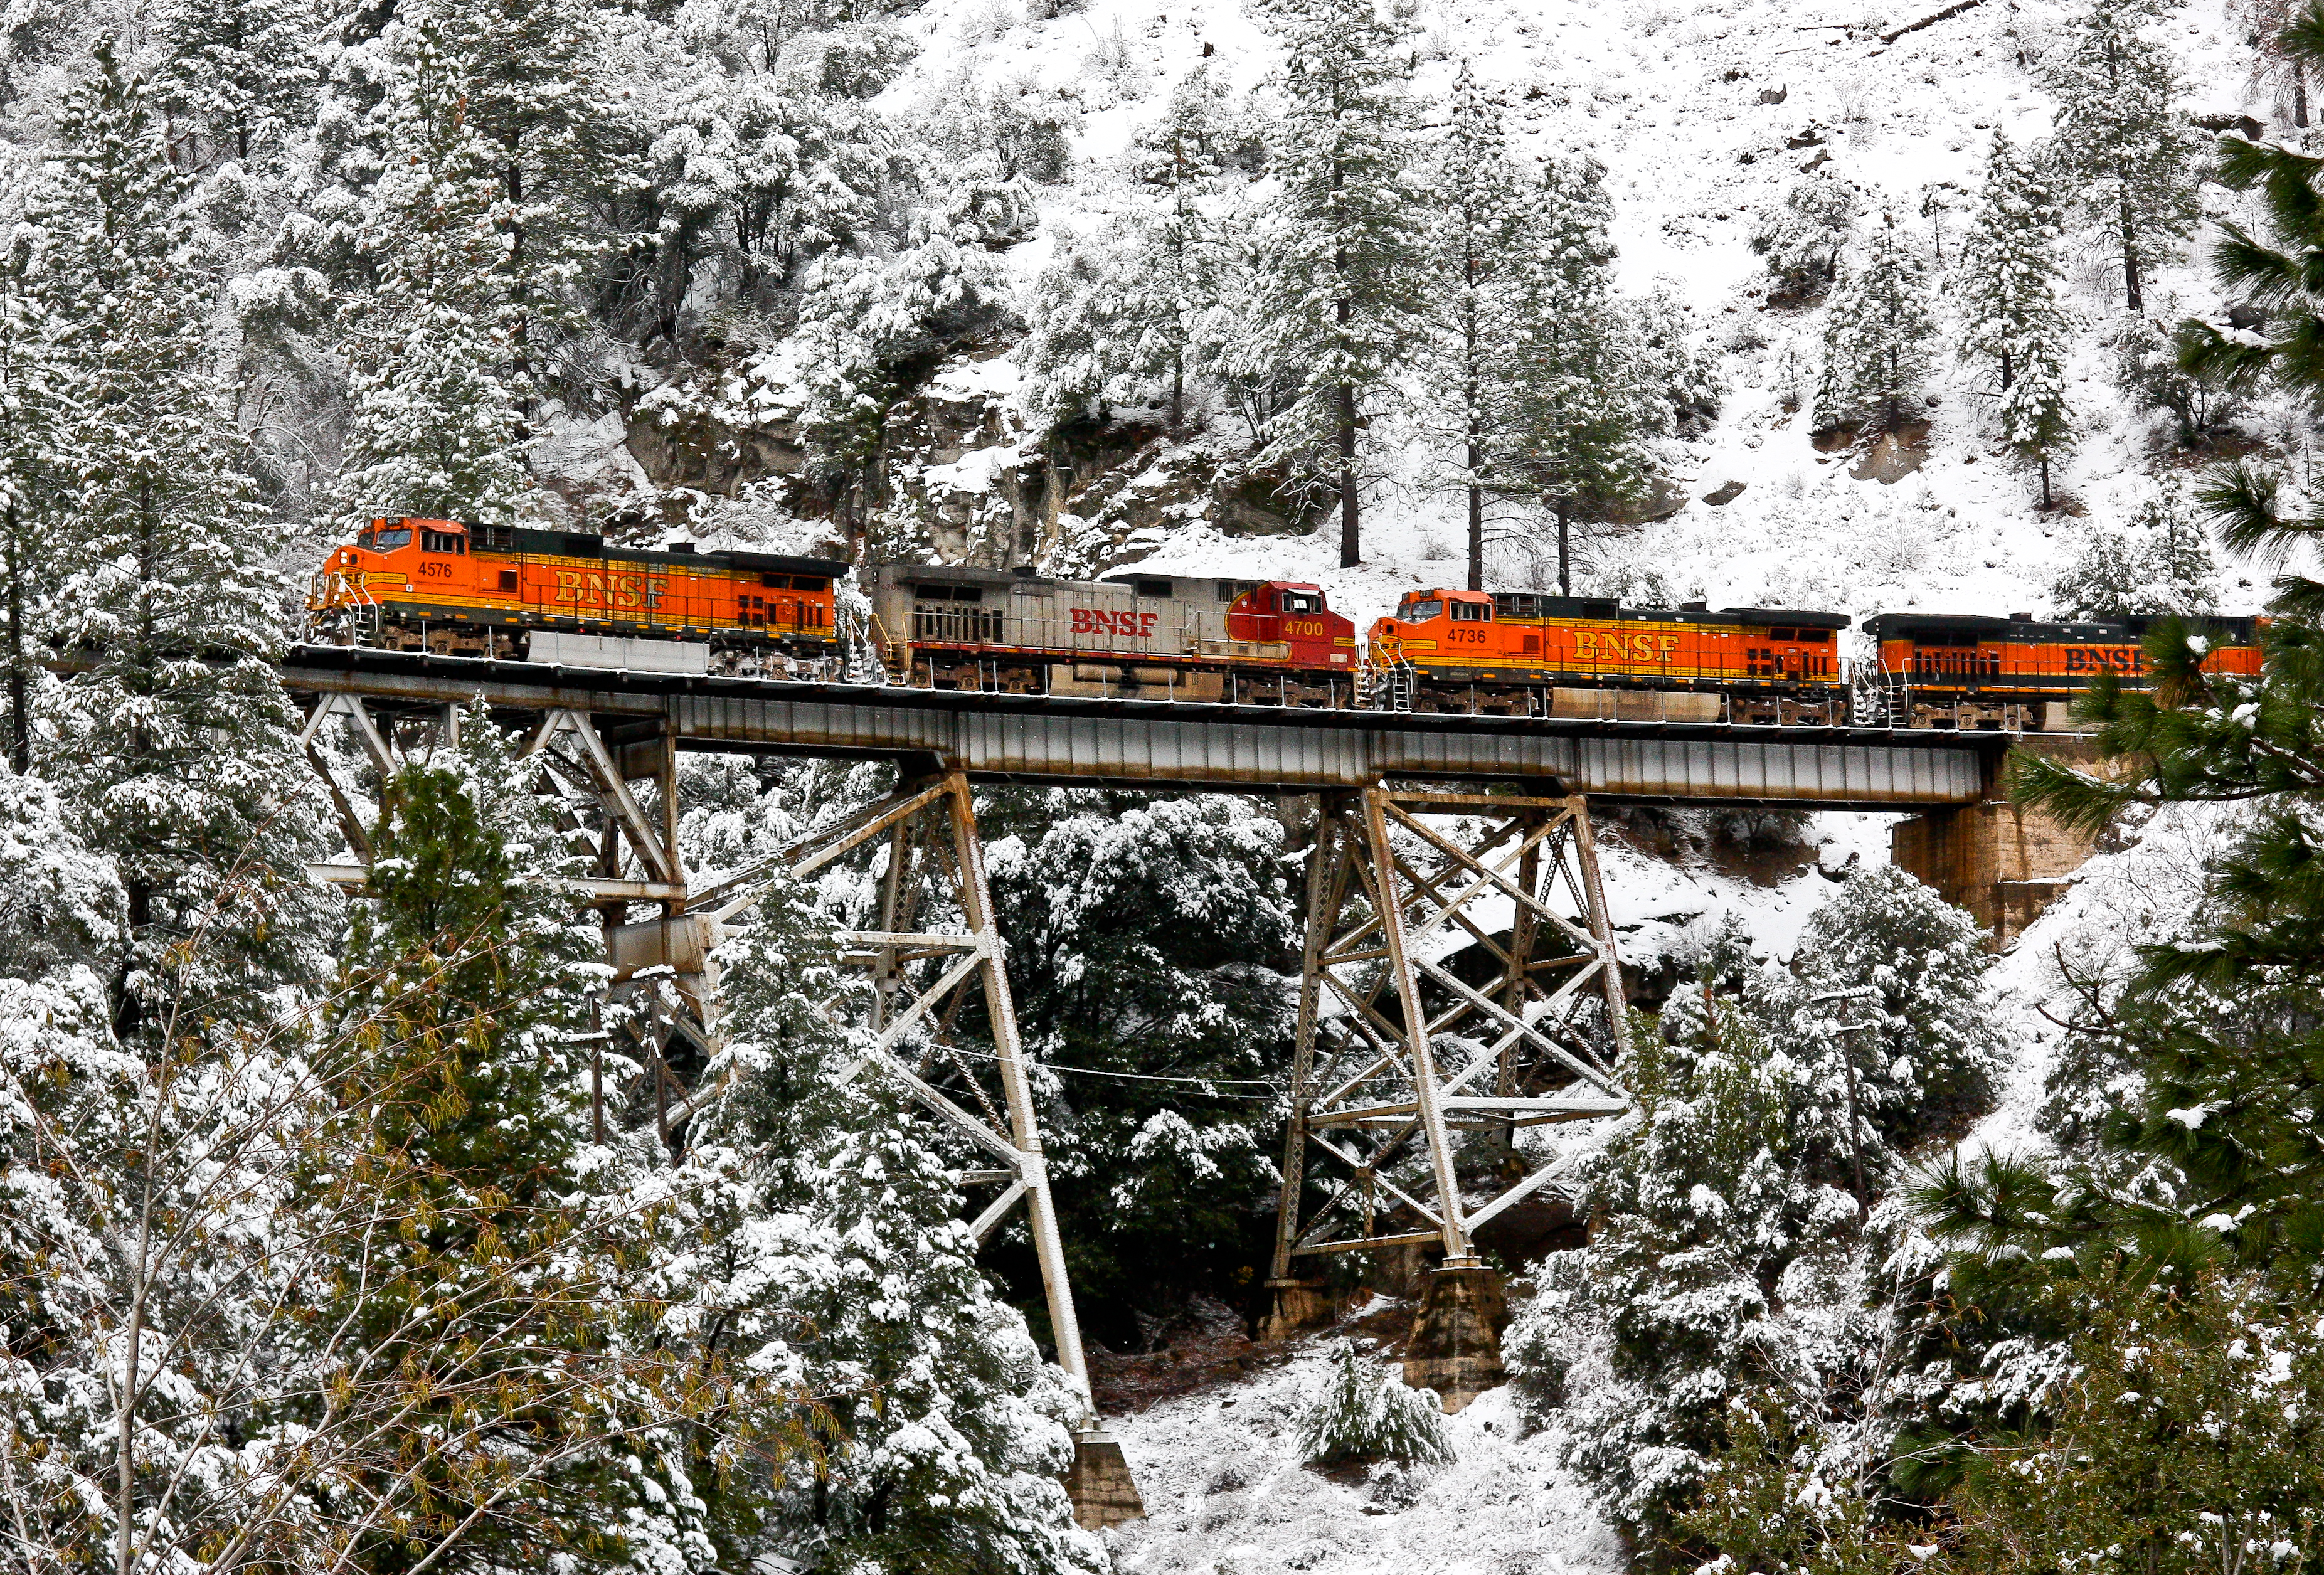 A BNSF train crosses the Rock Creek Trestle on a snowy day in the Feather River Canyon.